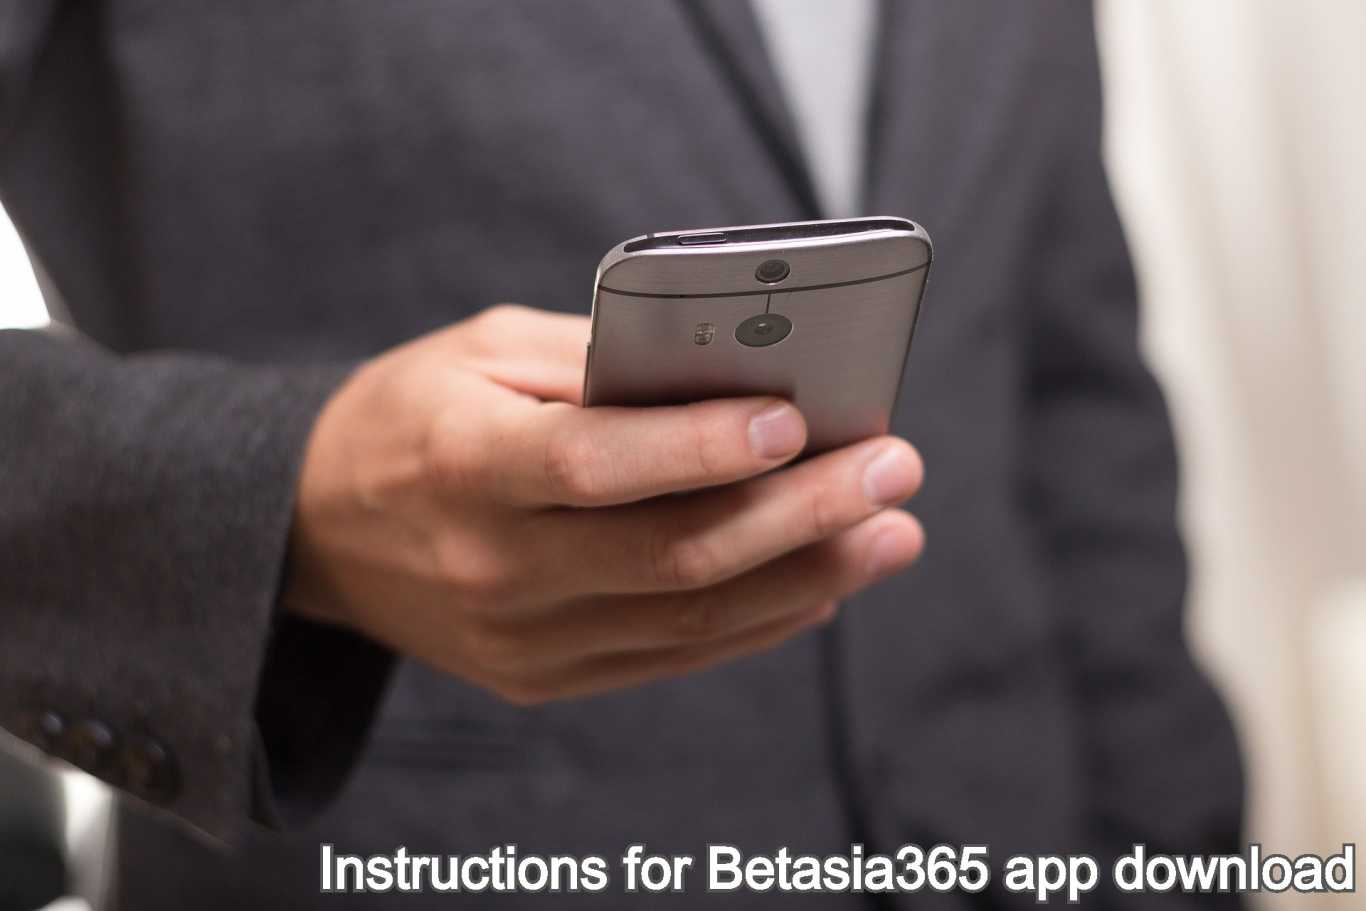 Instructions for Betasia365 app download